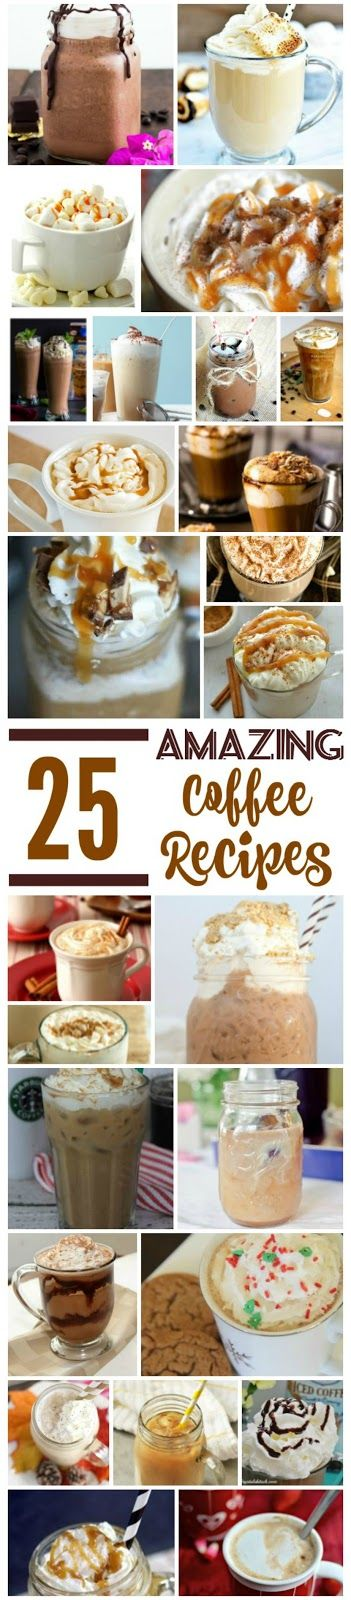 Coffee Recipes, 25 Amazing Coffee Recipes, the best coffee recipes, Hot coffee recipes, iced coffee recipes, National Coffee Day, Copycat Starbucks recipes